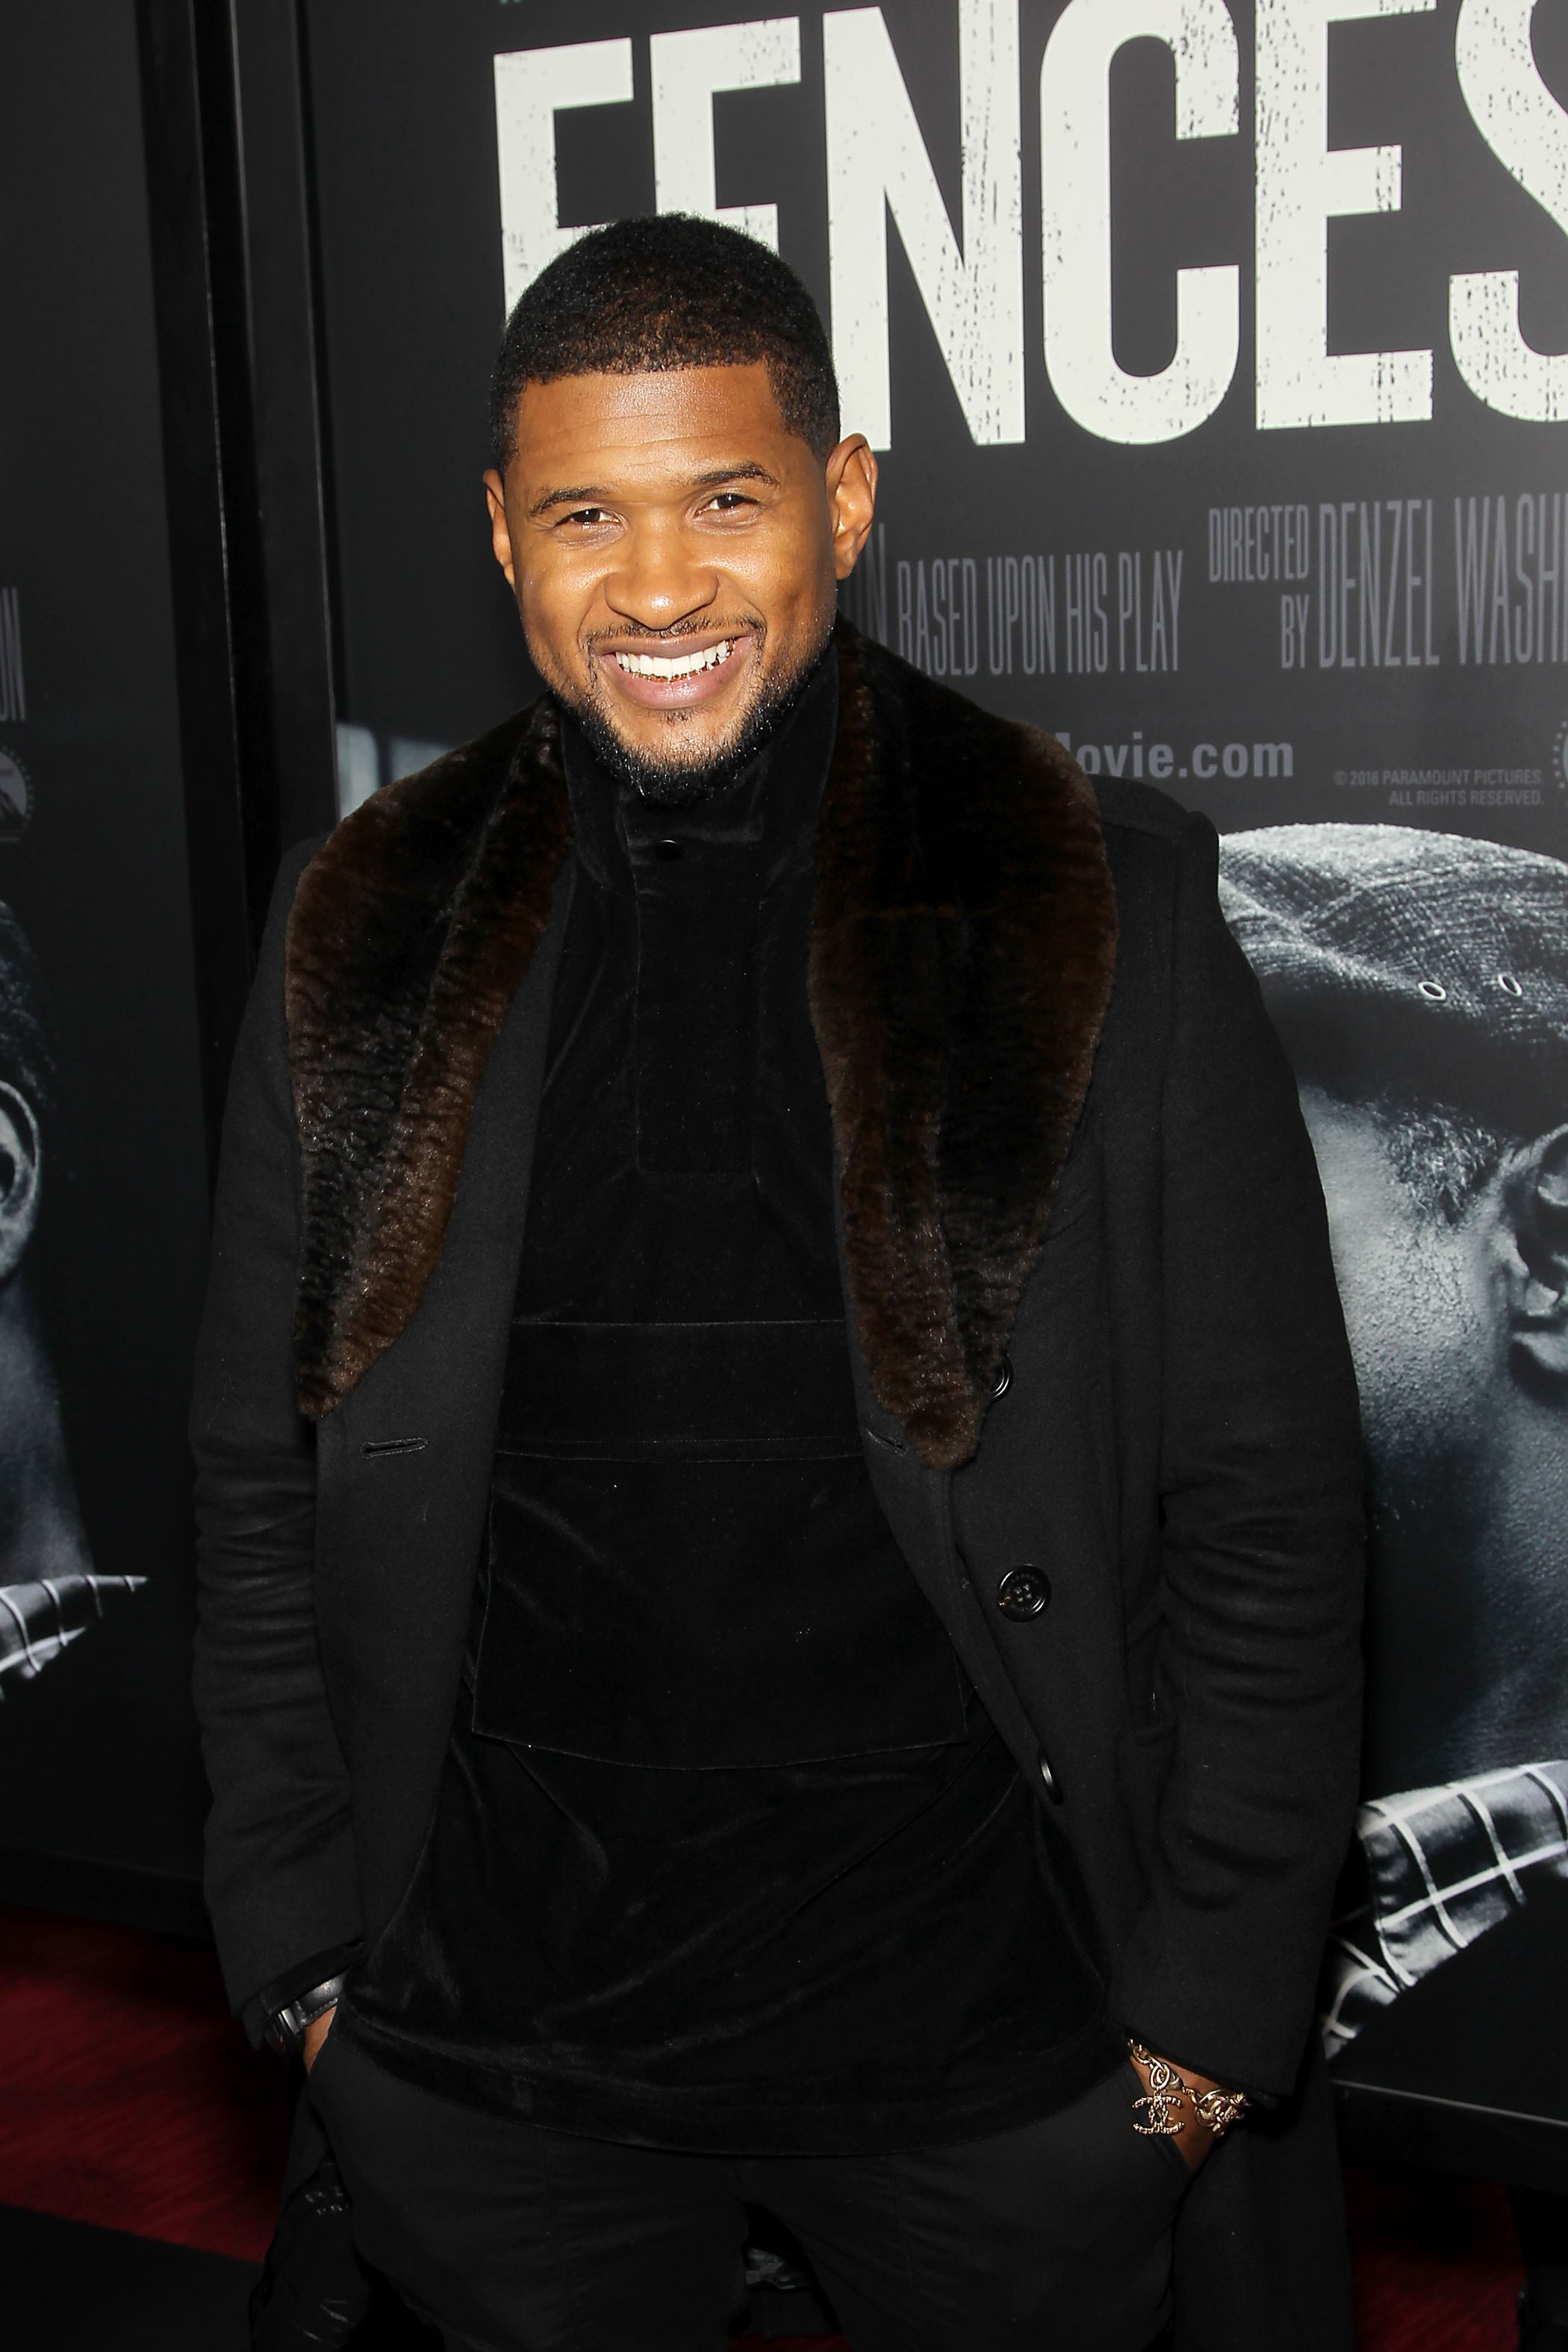 Usher: Bad tipper